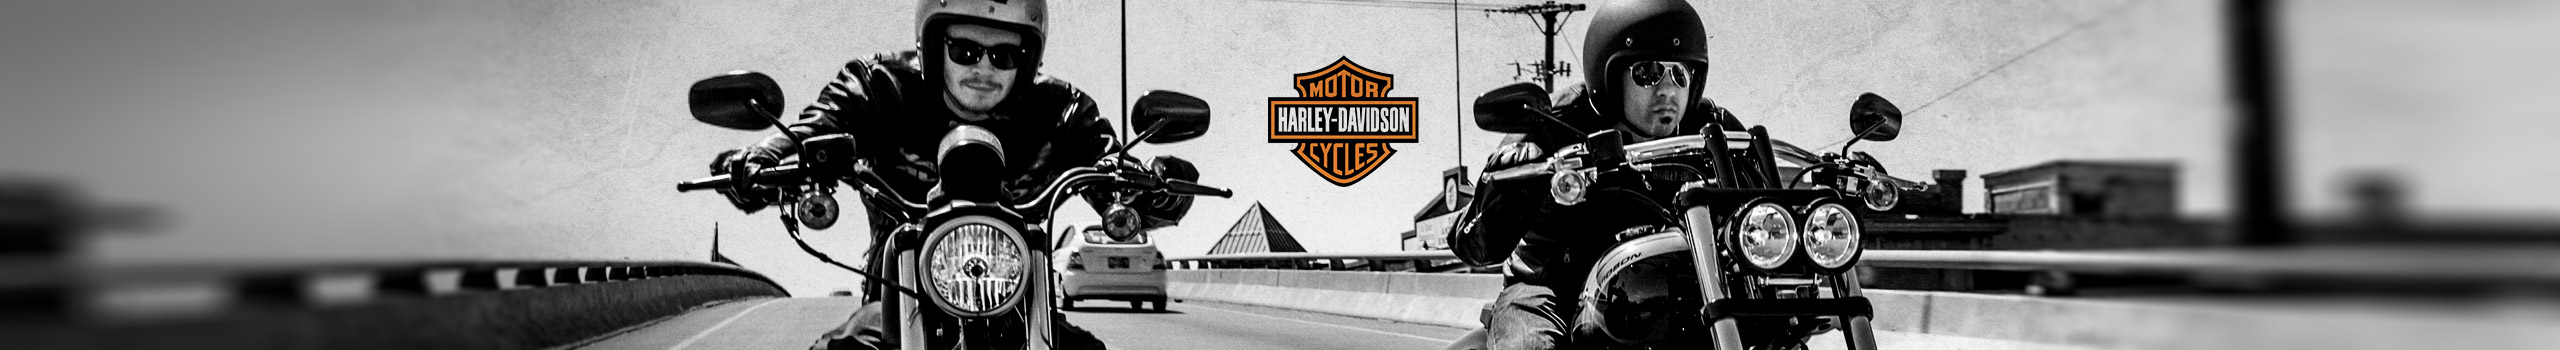 Motorcycles hero image for Harley-Davidson